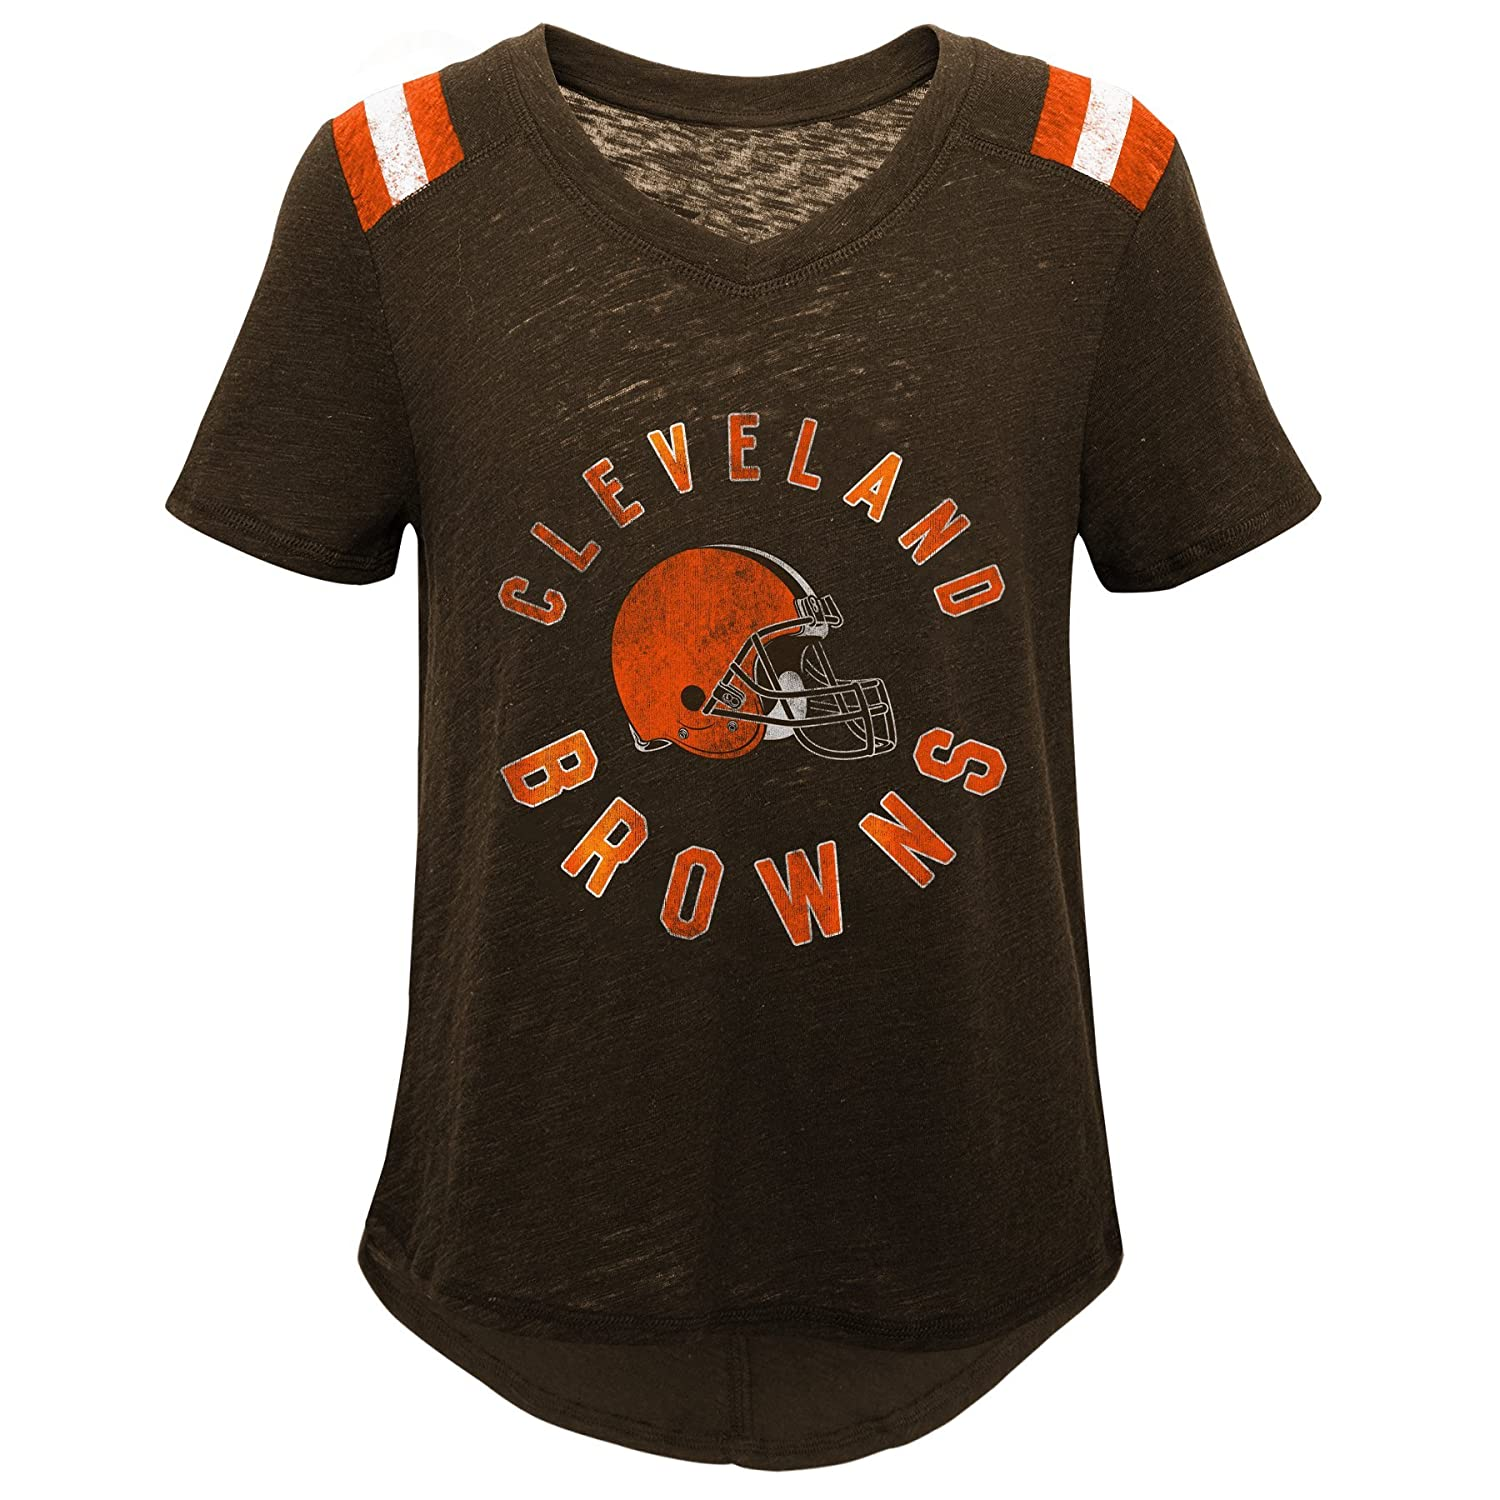 Outerstuff NFL NFL Cleveland Browns Youth Girls Retro Block Vintage Short Sleeve Football Tee Brown Suede 14 Youth Large